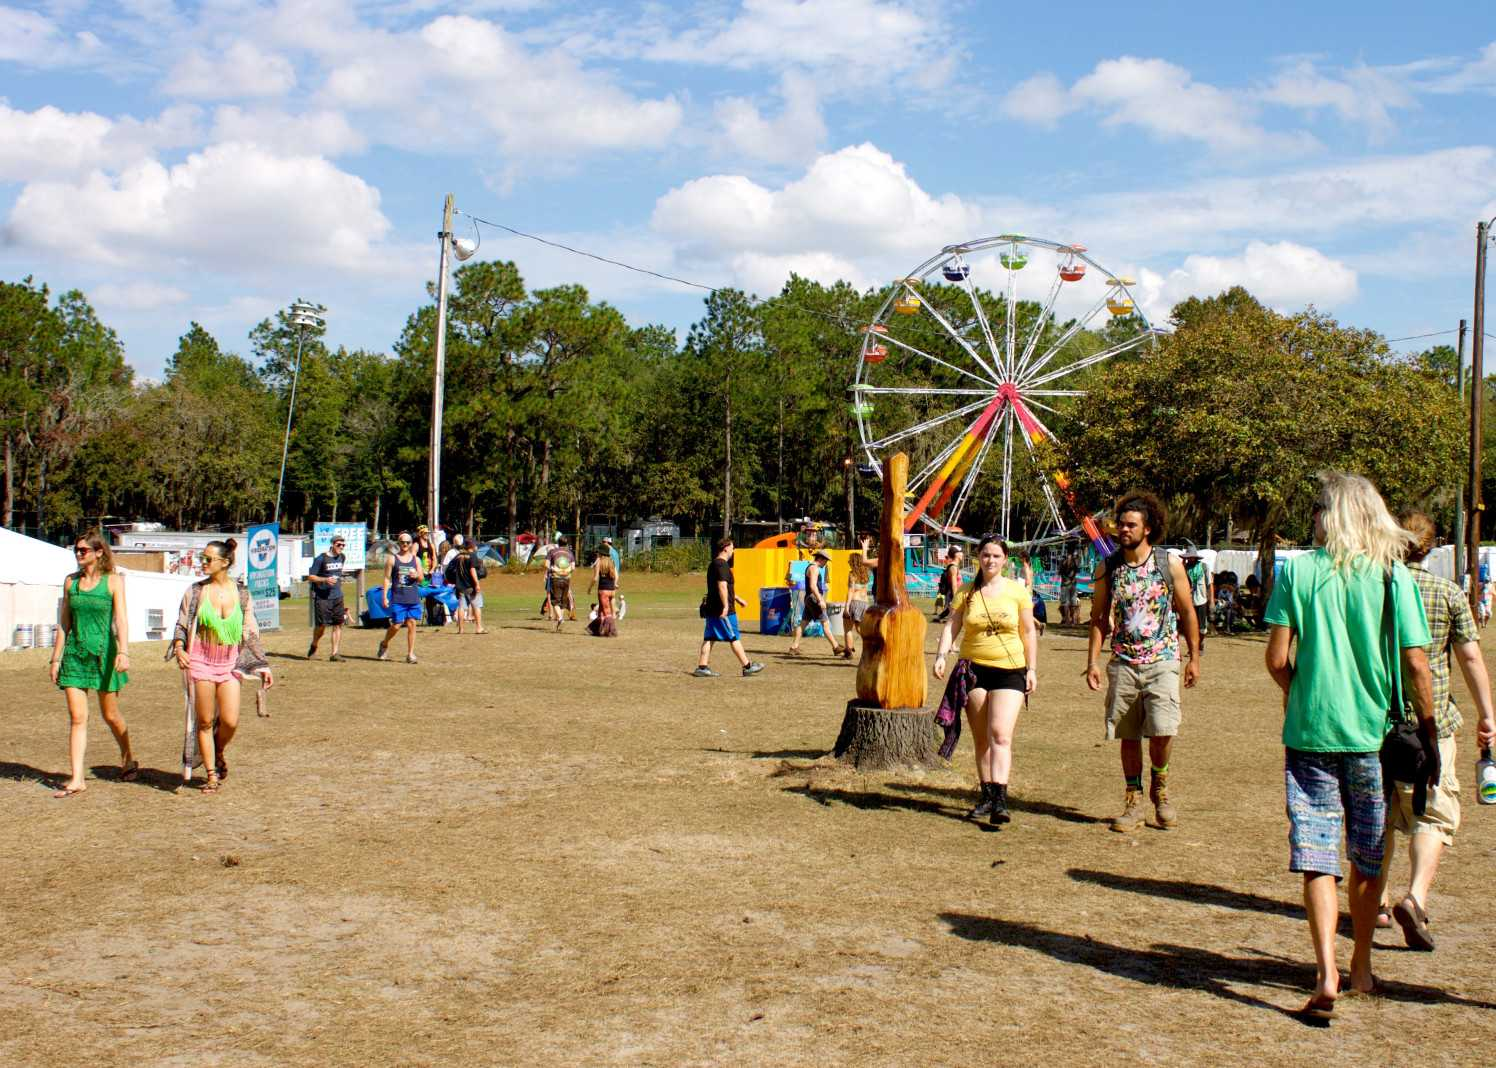 Spirit of the Suwannee Music Park brings amusement of all kinds to their park during festivals. <i>Photo by Sarah De Nicolais</i>